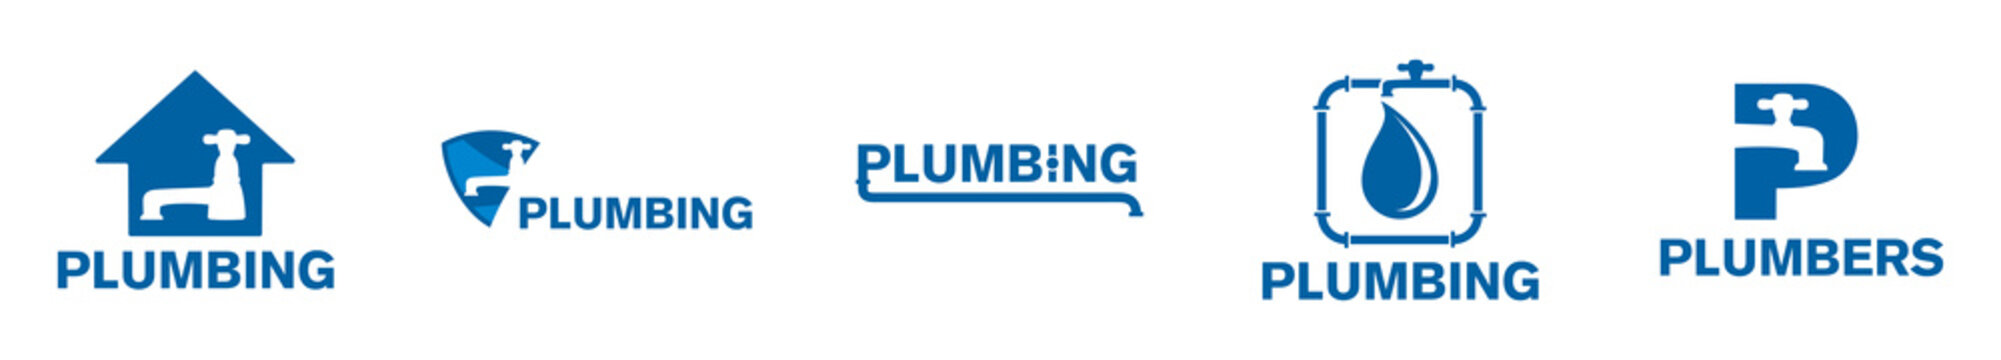 Vector logo of plumbing and water supply company